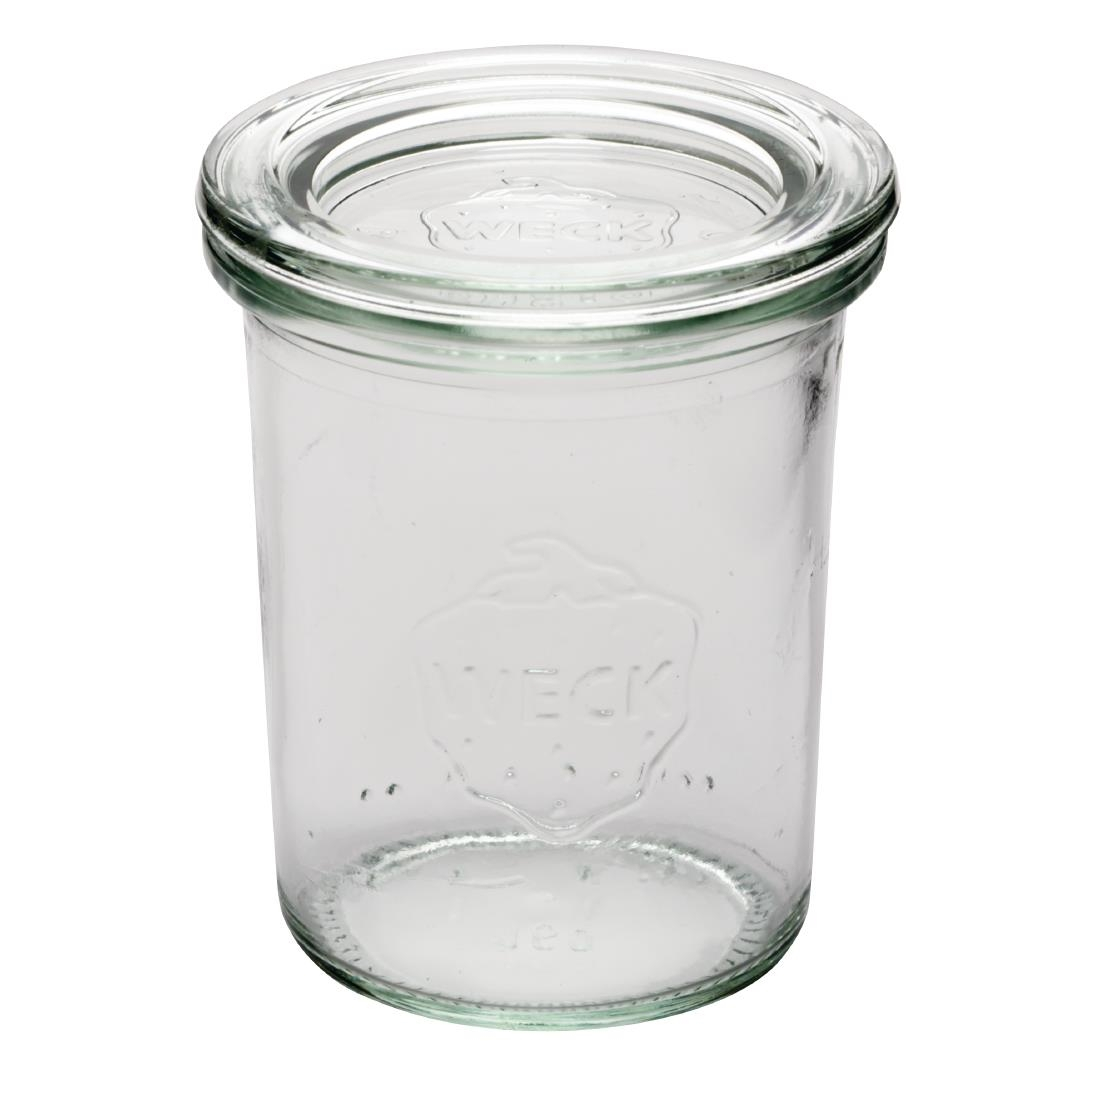 Image of APS 160ml Weck Jar (Pack of 12) Pack of 12